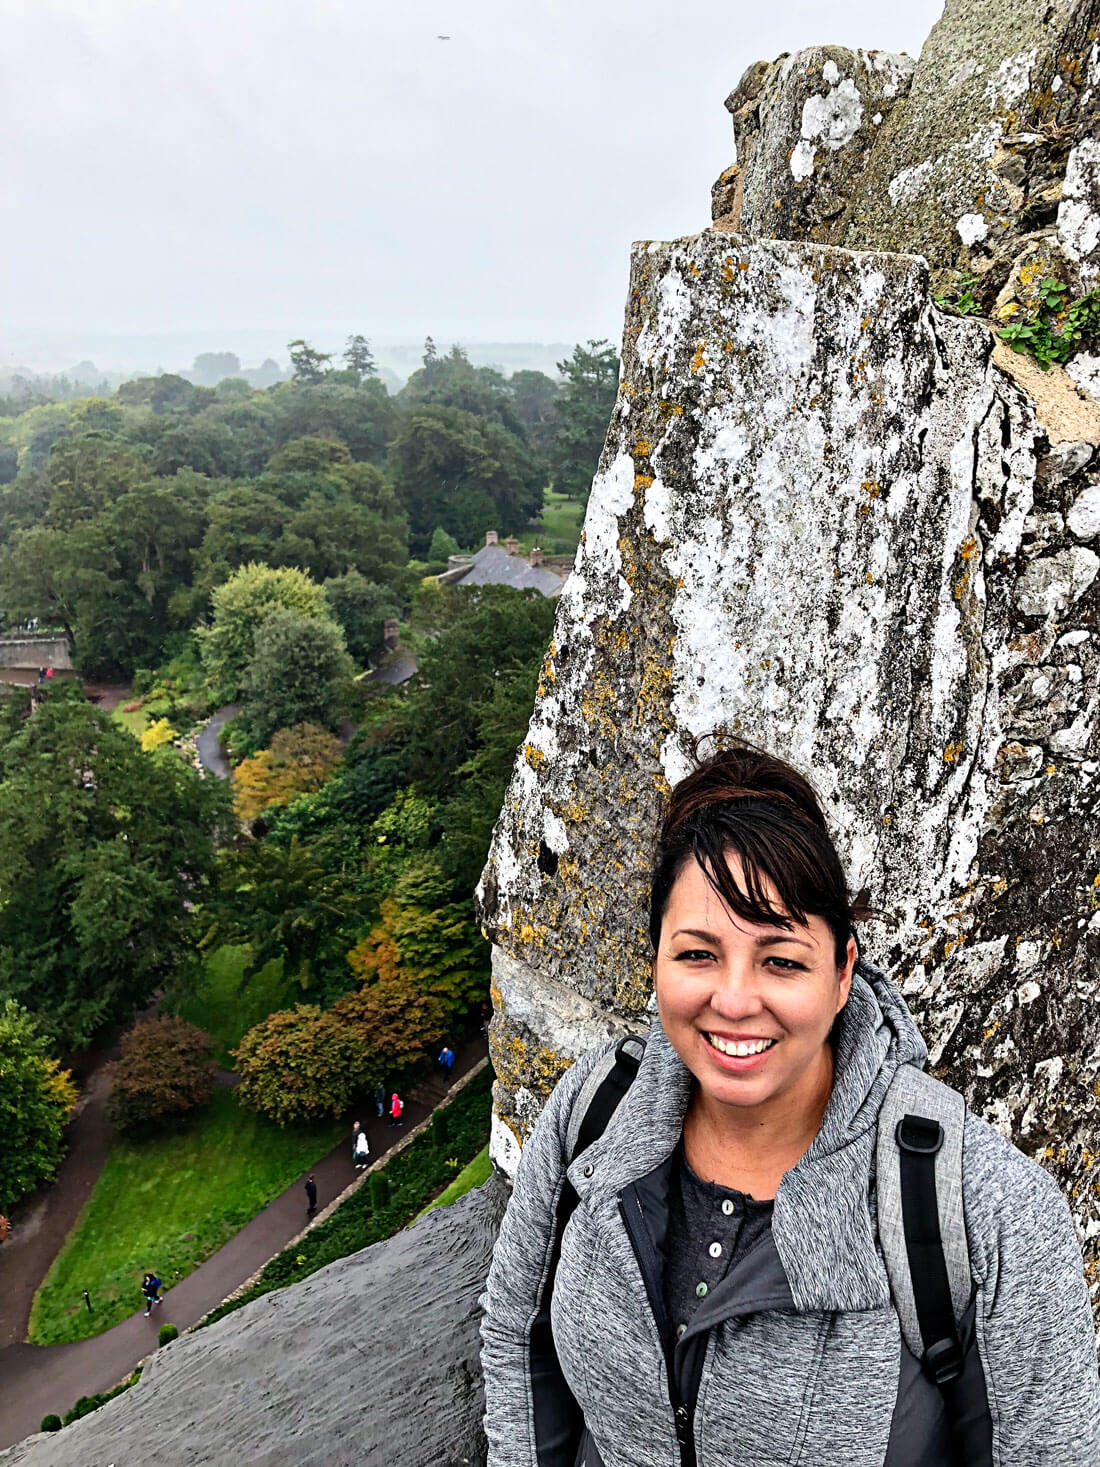 At the top of the Blarney Castle in Ireland